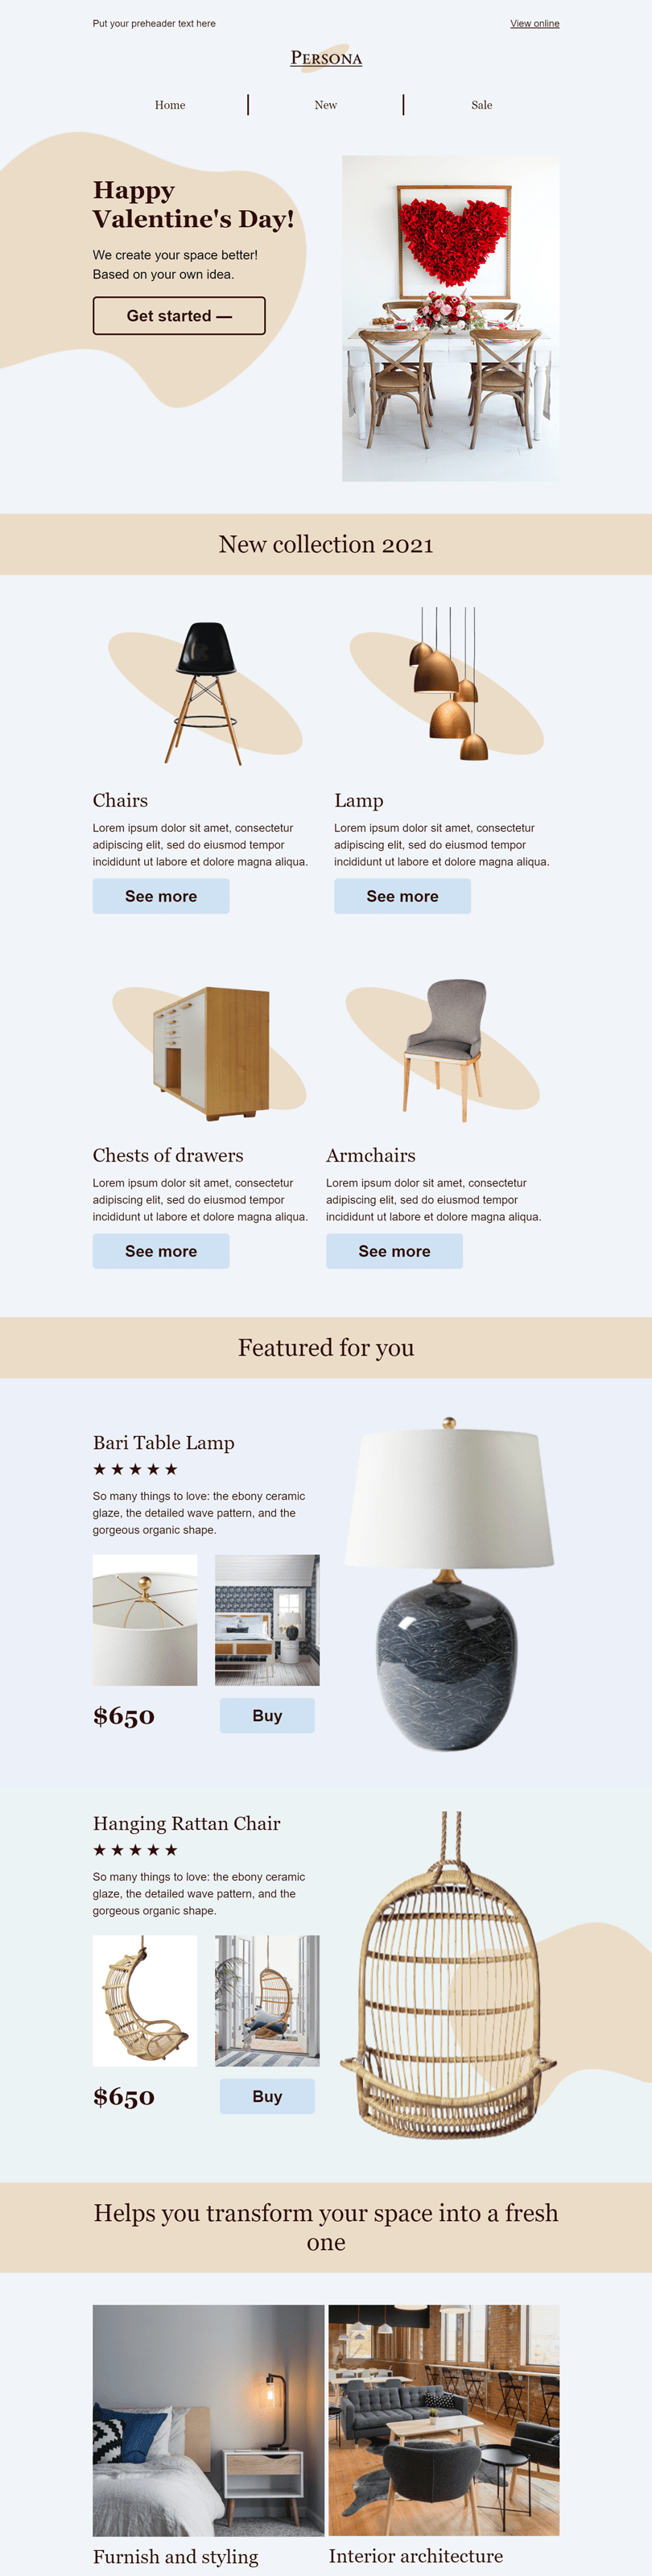 Valentine's Day Email Template «Romantic design» for Furniture, Interior & DIY industry desktop view